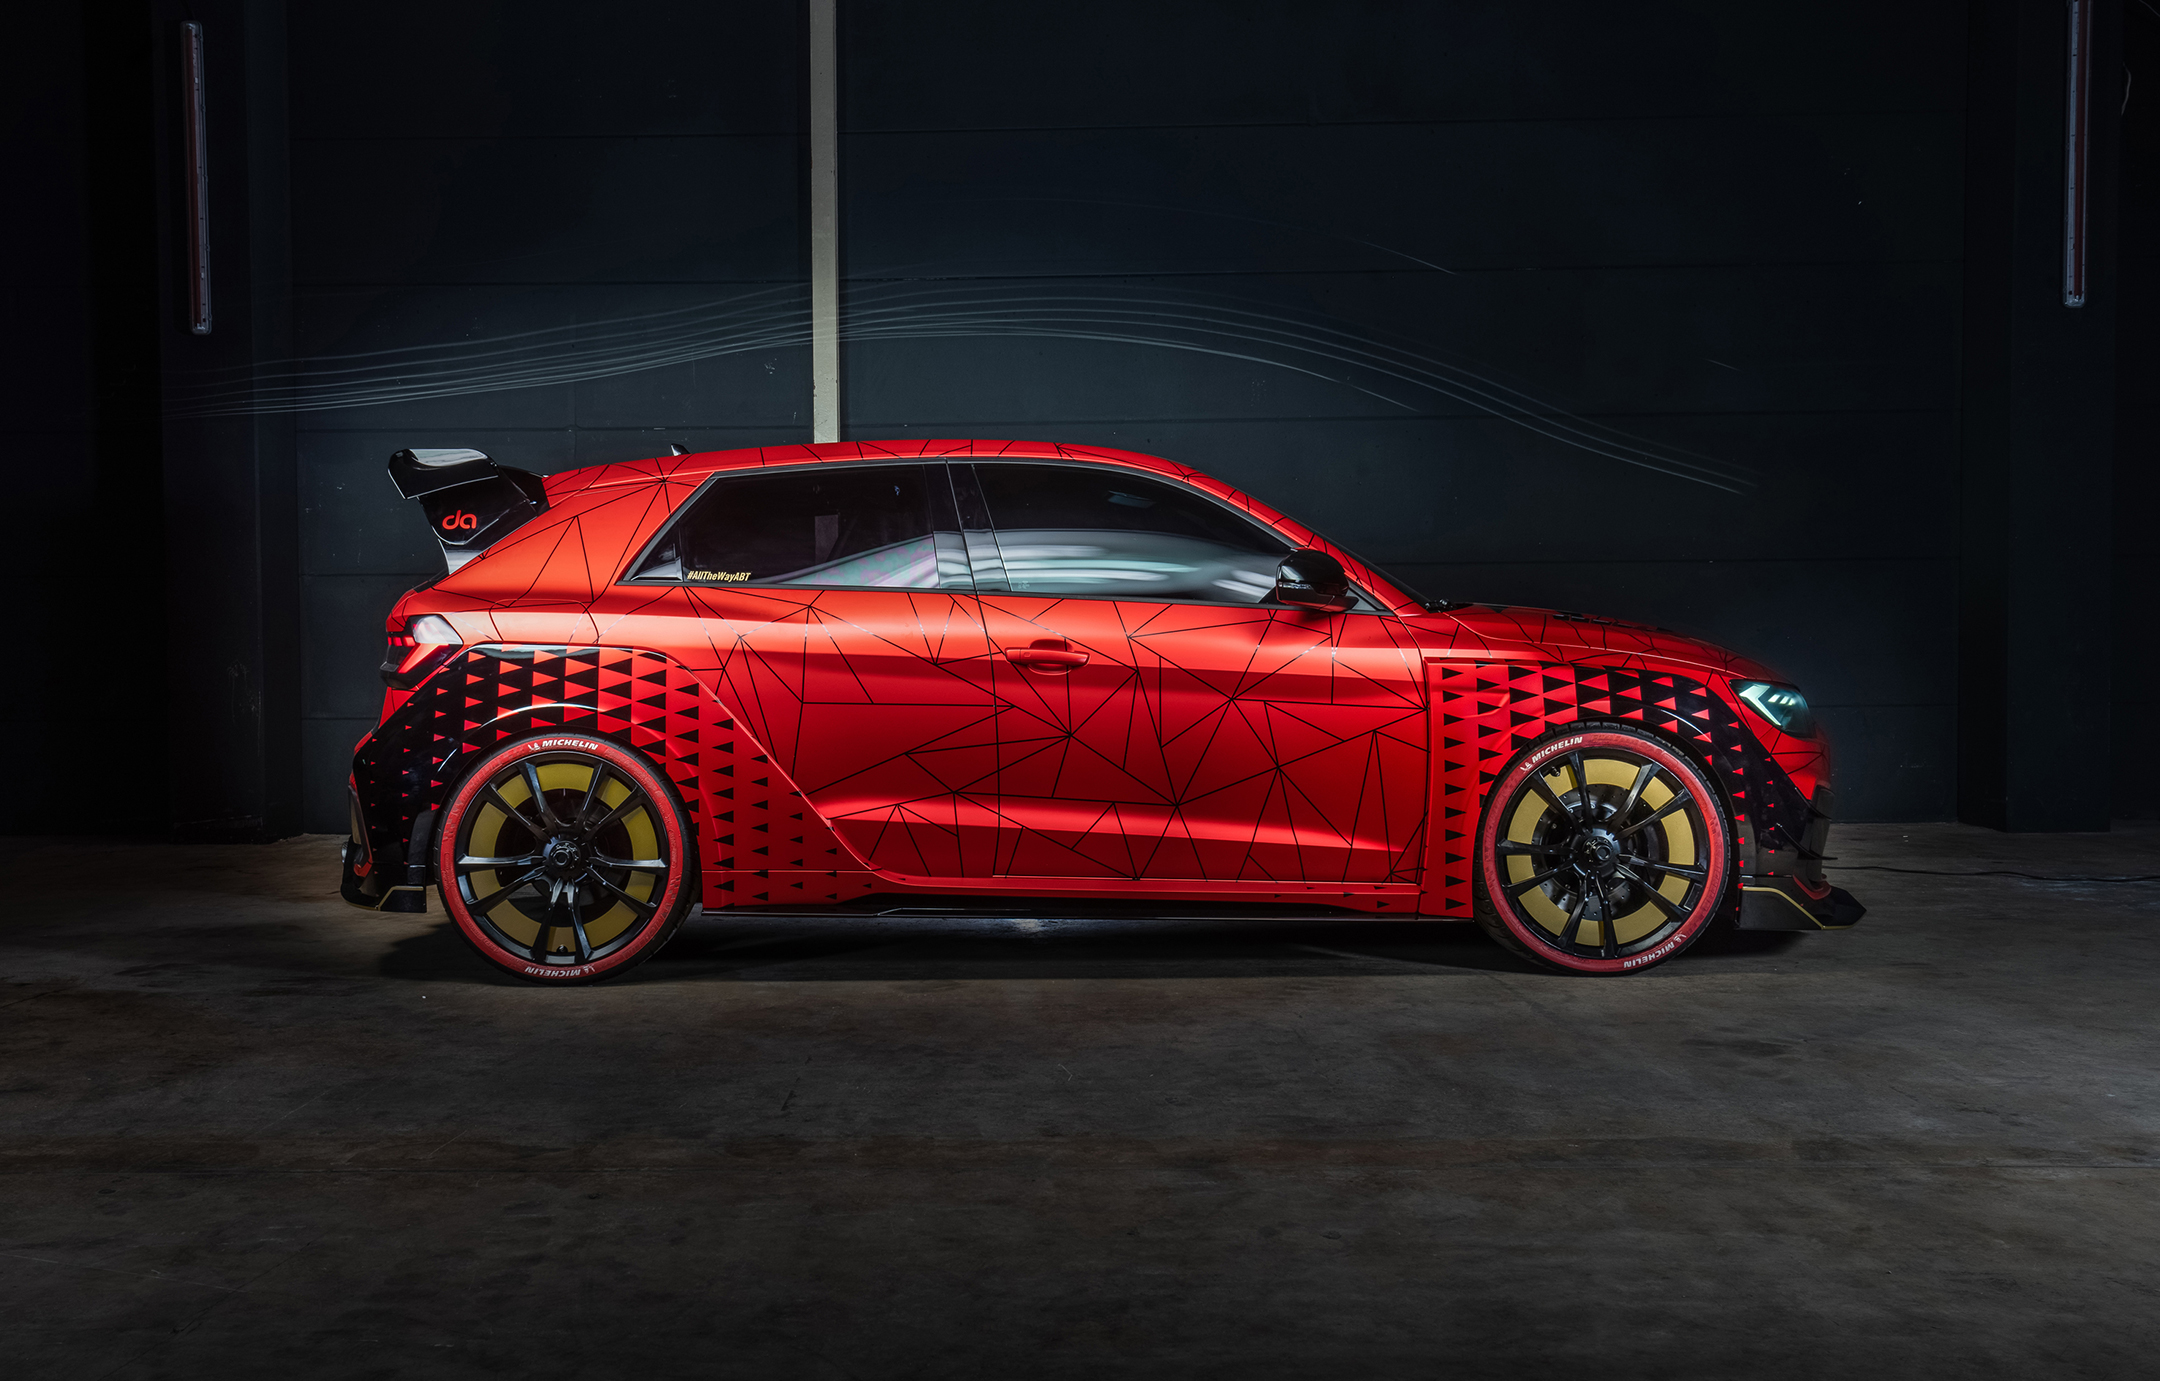 ABT Audi A1 1of1 - 2019 - side-face / profil